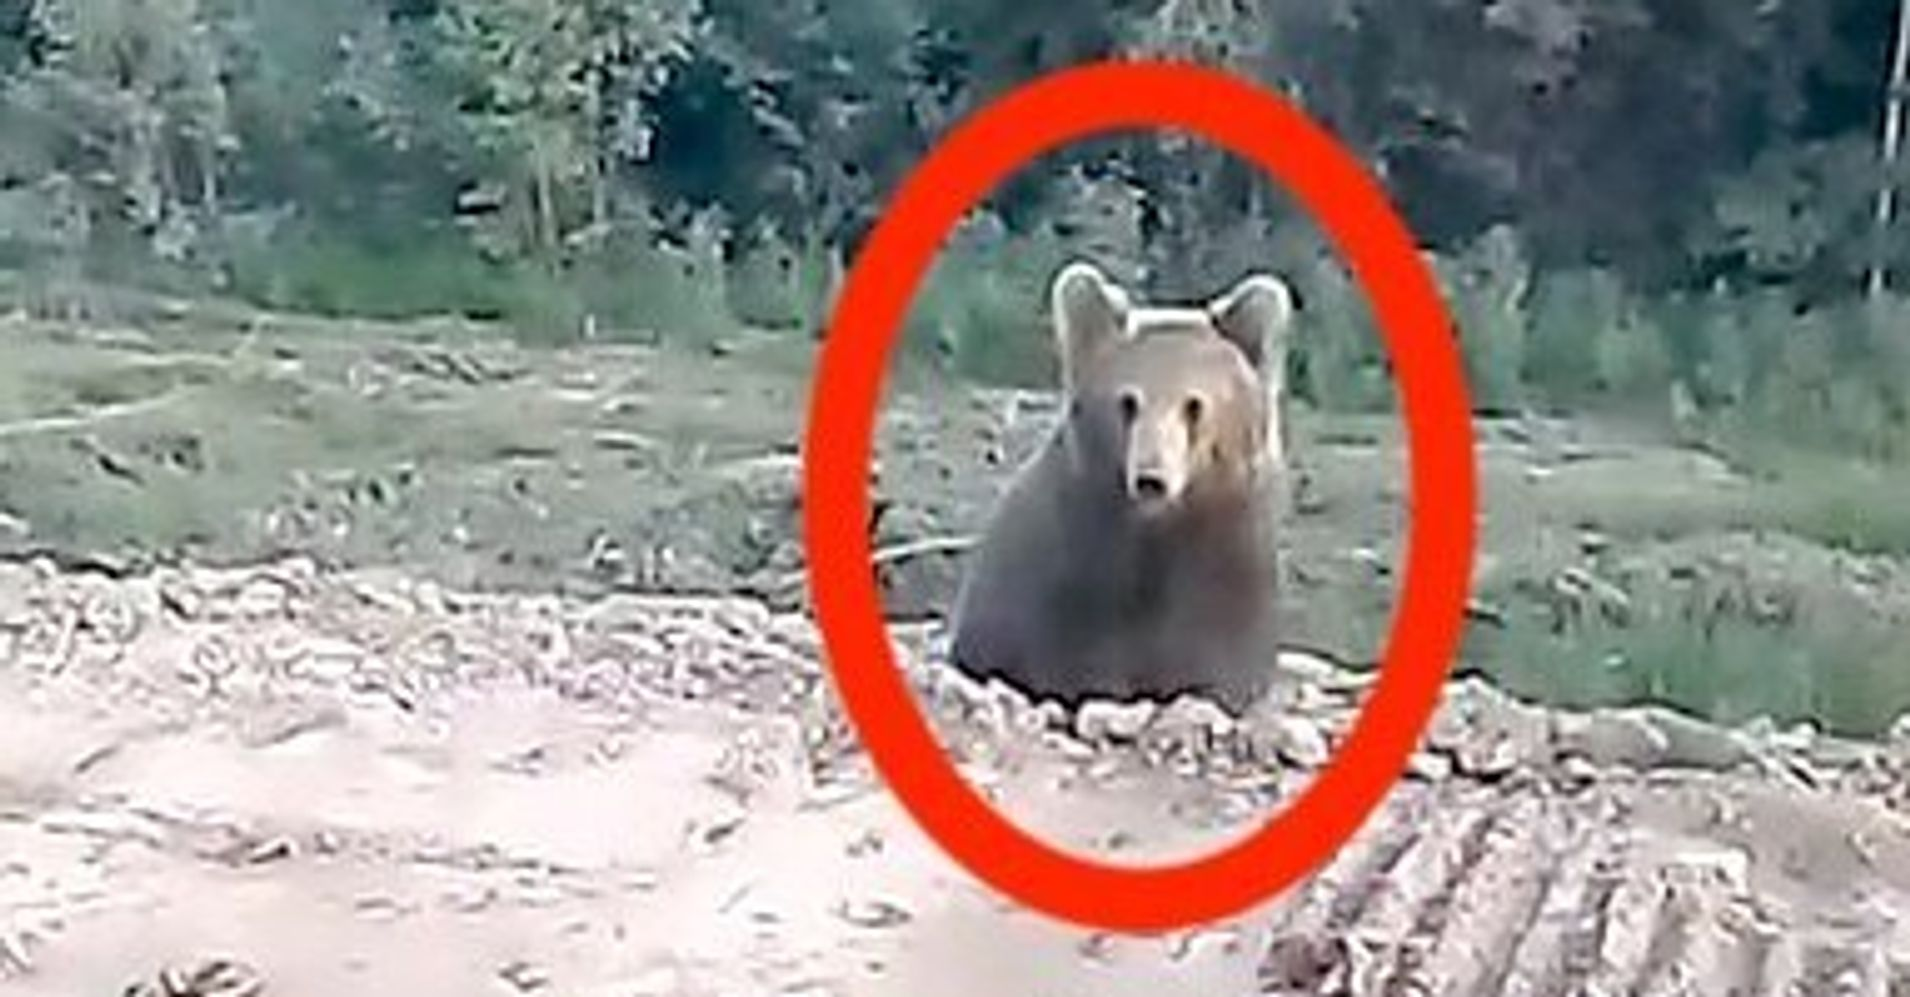 Westlake Legal Group 5d26ca582600004a00044191 Here's How Quickly A Seemingly Adorable Bear Can Turn On You